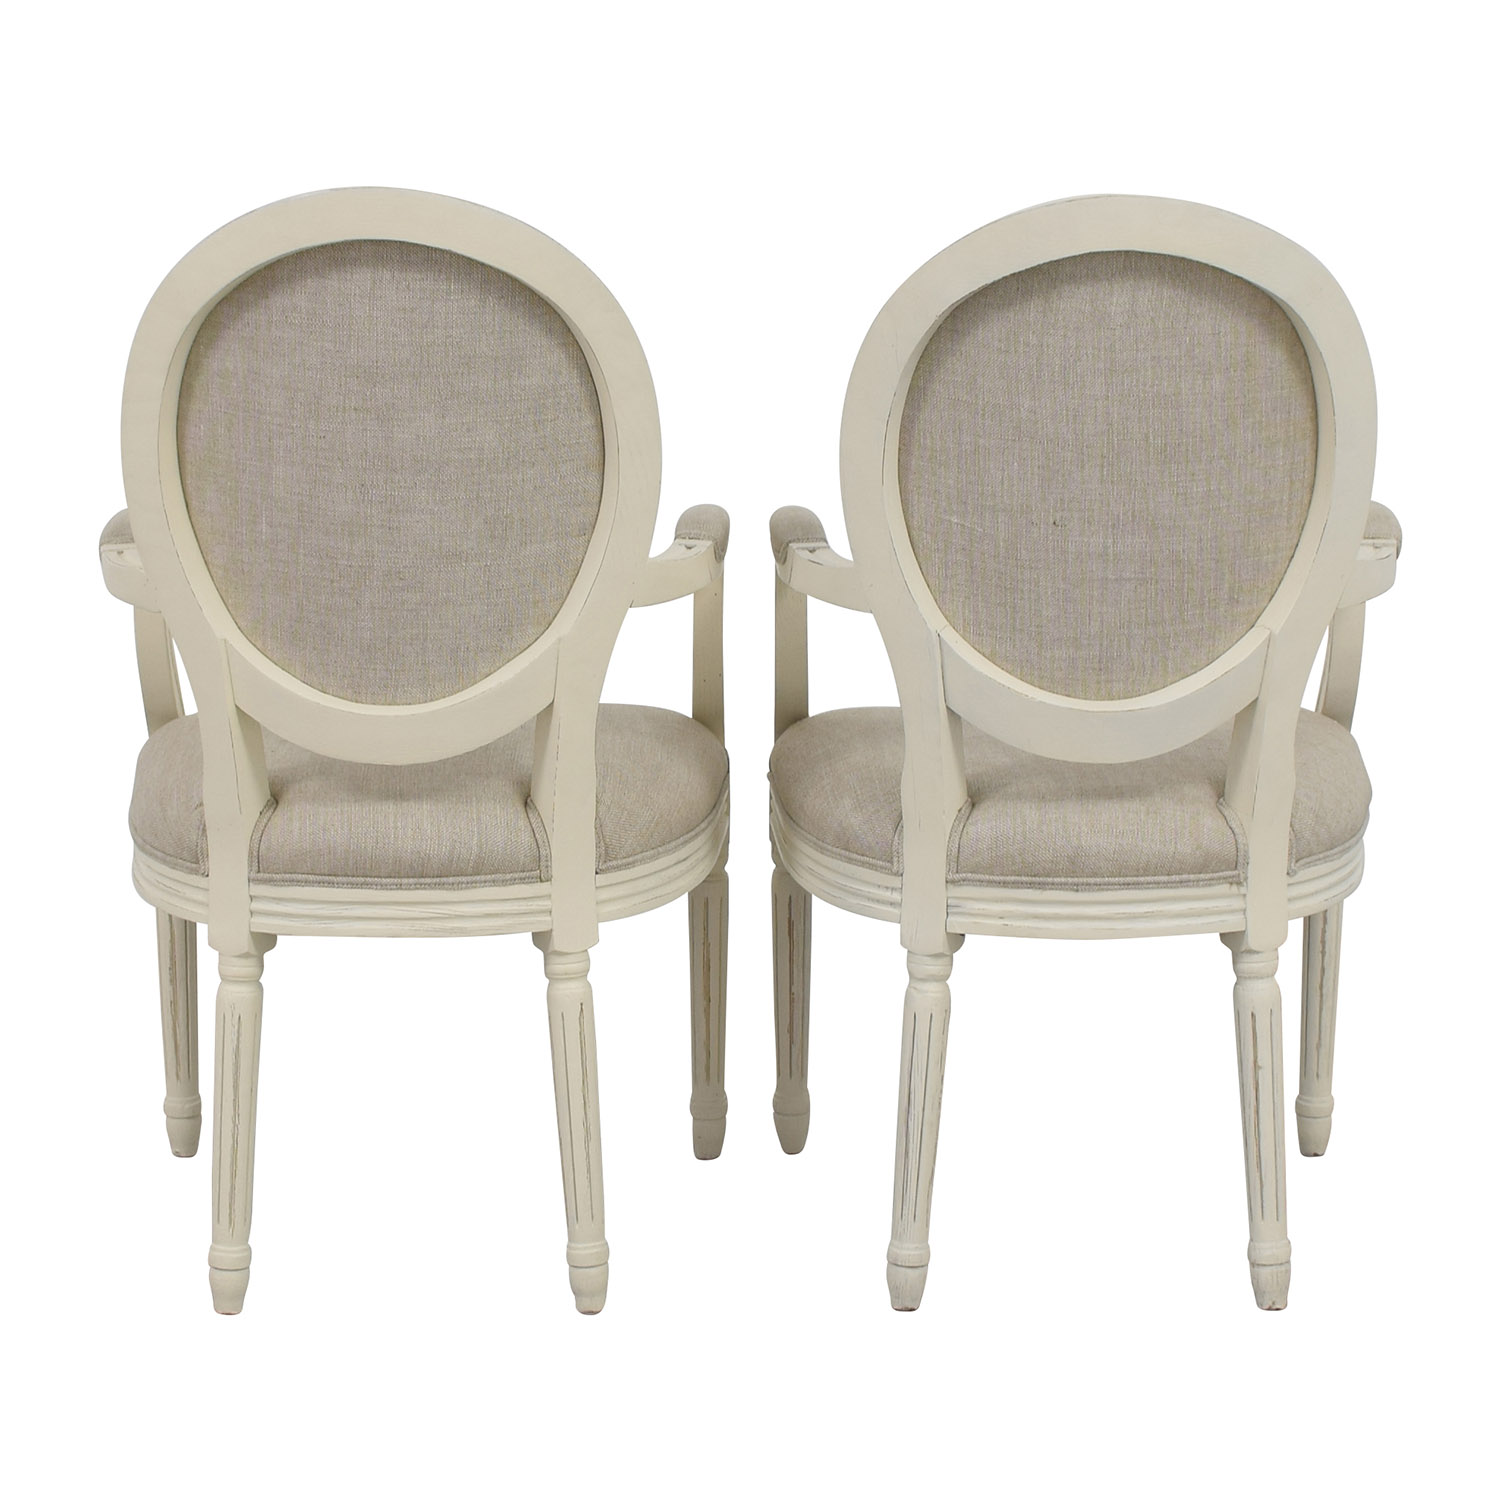 Restoration Hardware Restoration Hardware Beige French Chairs